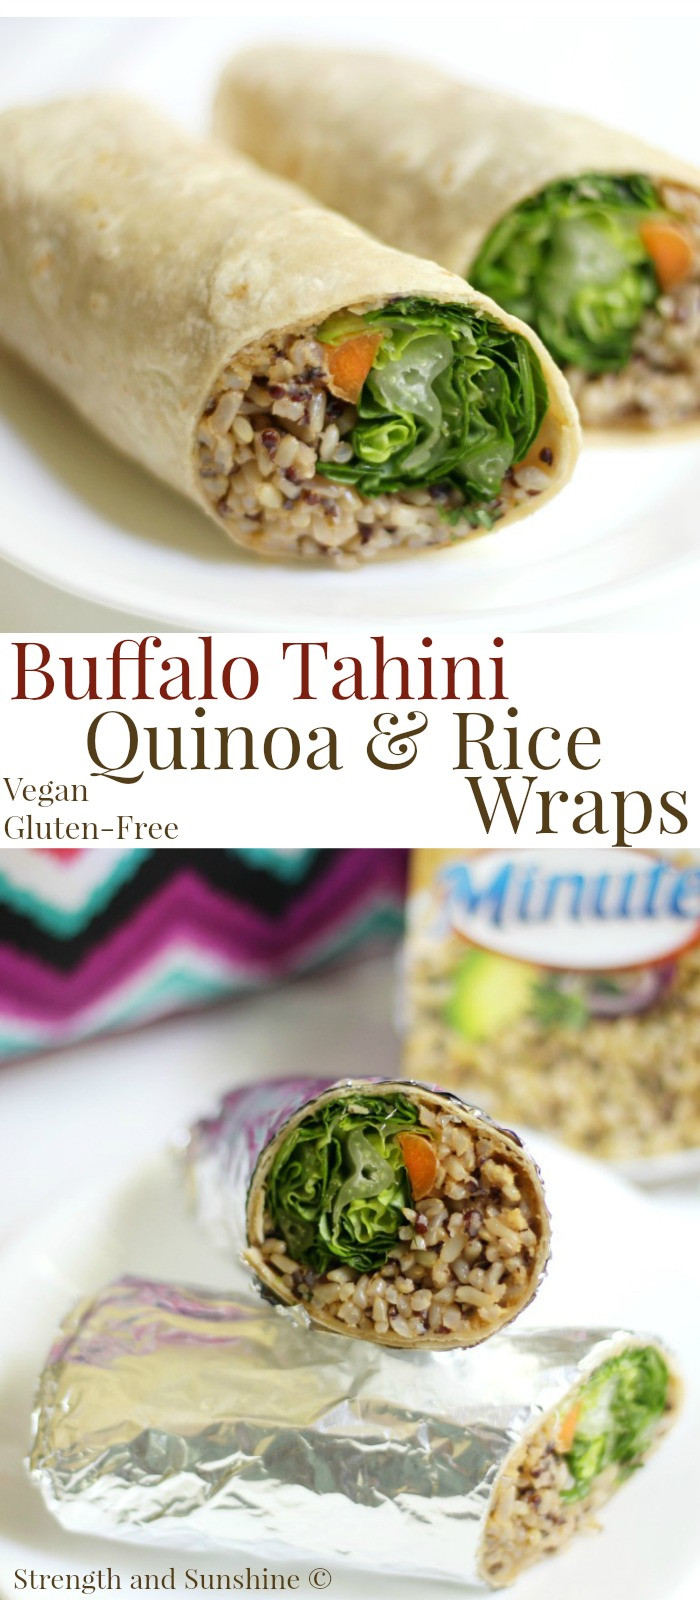 Buffalo Tahini Quinoa & Rice Wraps (Gluten-Free, Vegan) | Strength and Sunshine @RebeccaGF666 A quick and easy lunch idea for those hectic days! Buffalo Tahini Quinoa & Rice Wraps that are gluten-free, vegan, top 8 allergy-free, and freezable! A great recipe to meal prep so you'll always have a delicious option ready to go. Ad @minutericeus